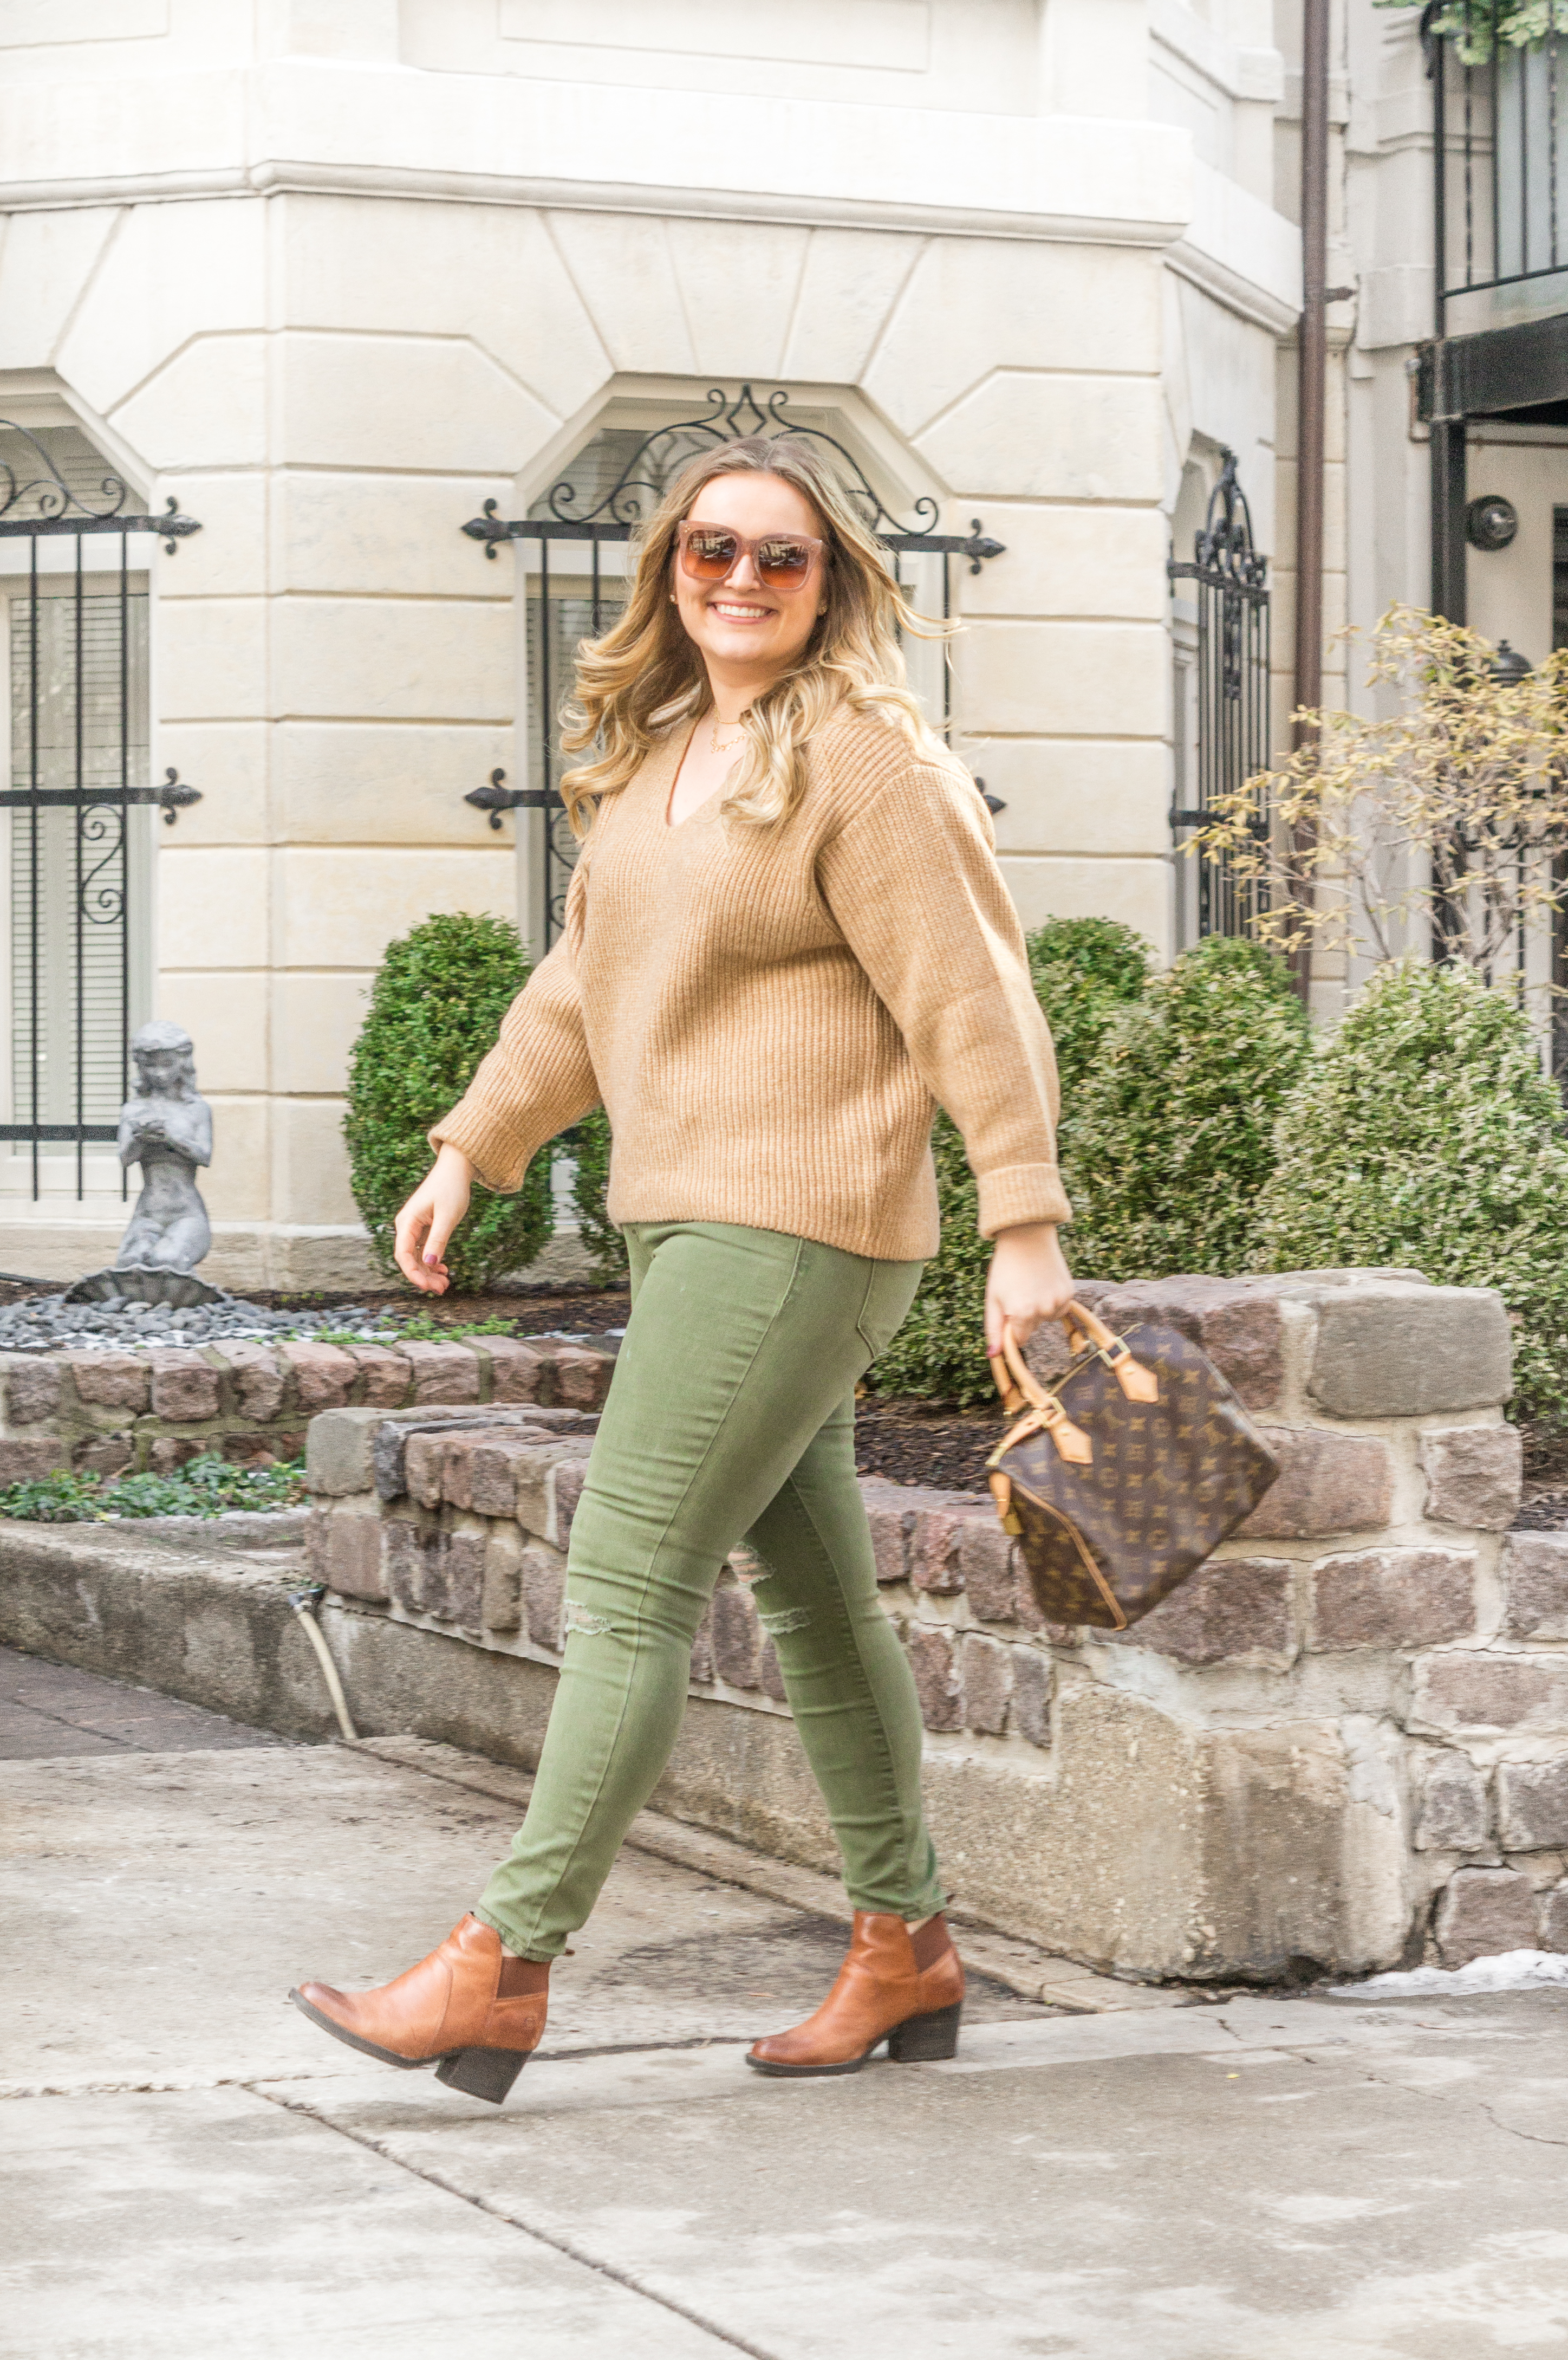 affordable winter outfit - jeans and sweater